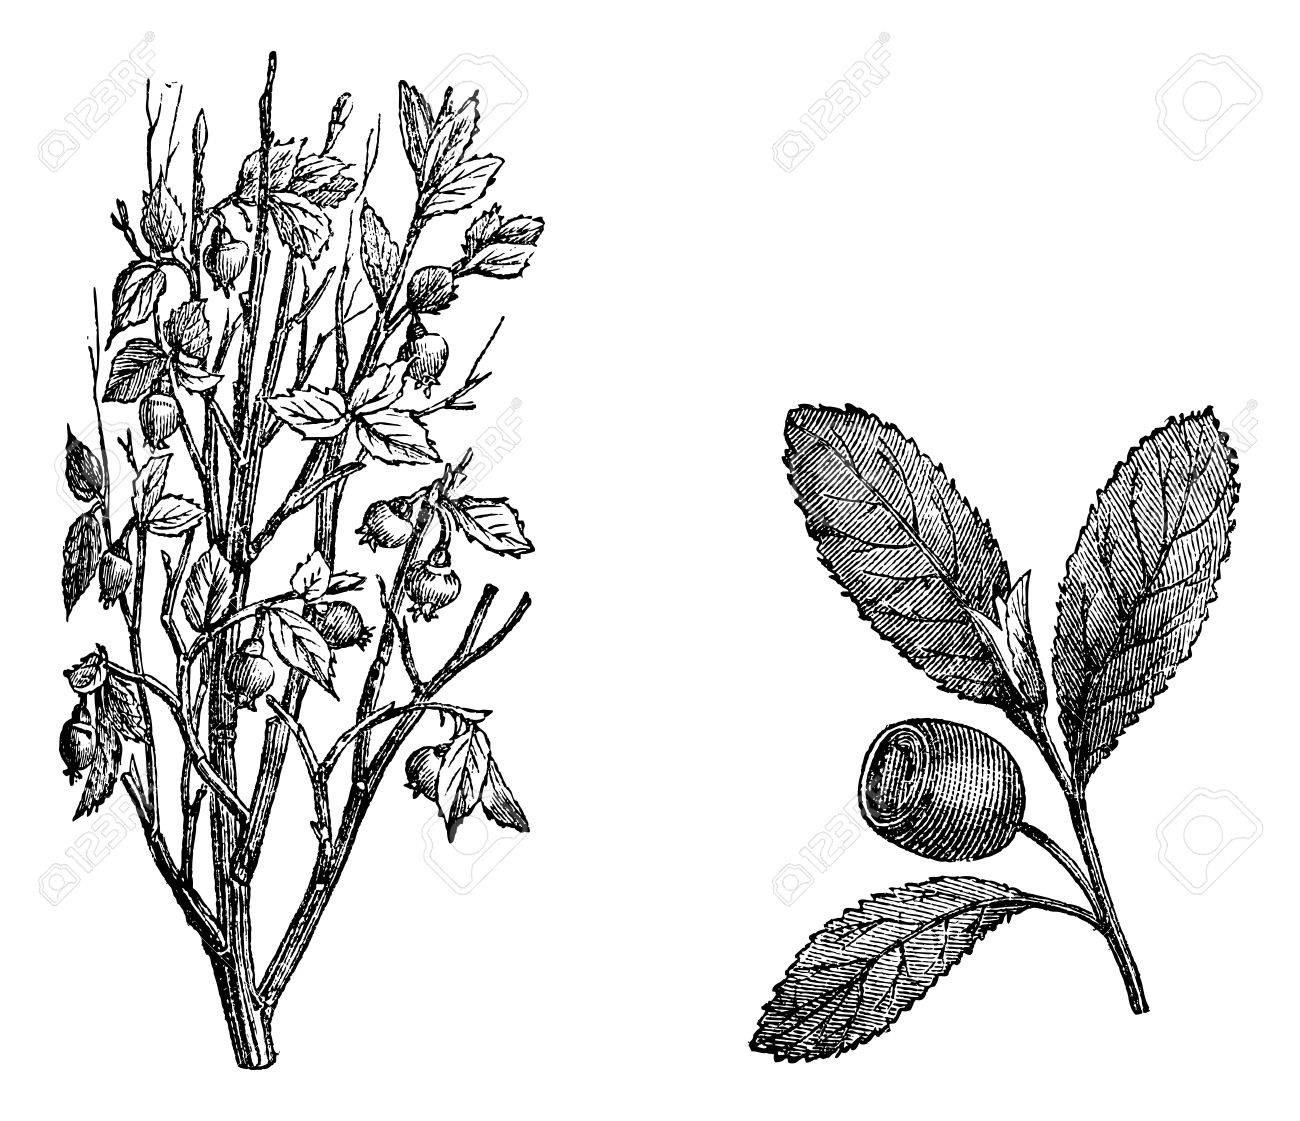 Cranberry branch, Fig.58. Cranberry Fruit, vintage engraved illustration. Magasin Pittoresque 1875. Stock Vector - 13770202